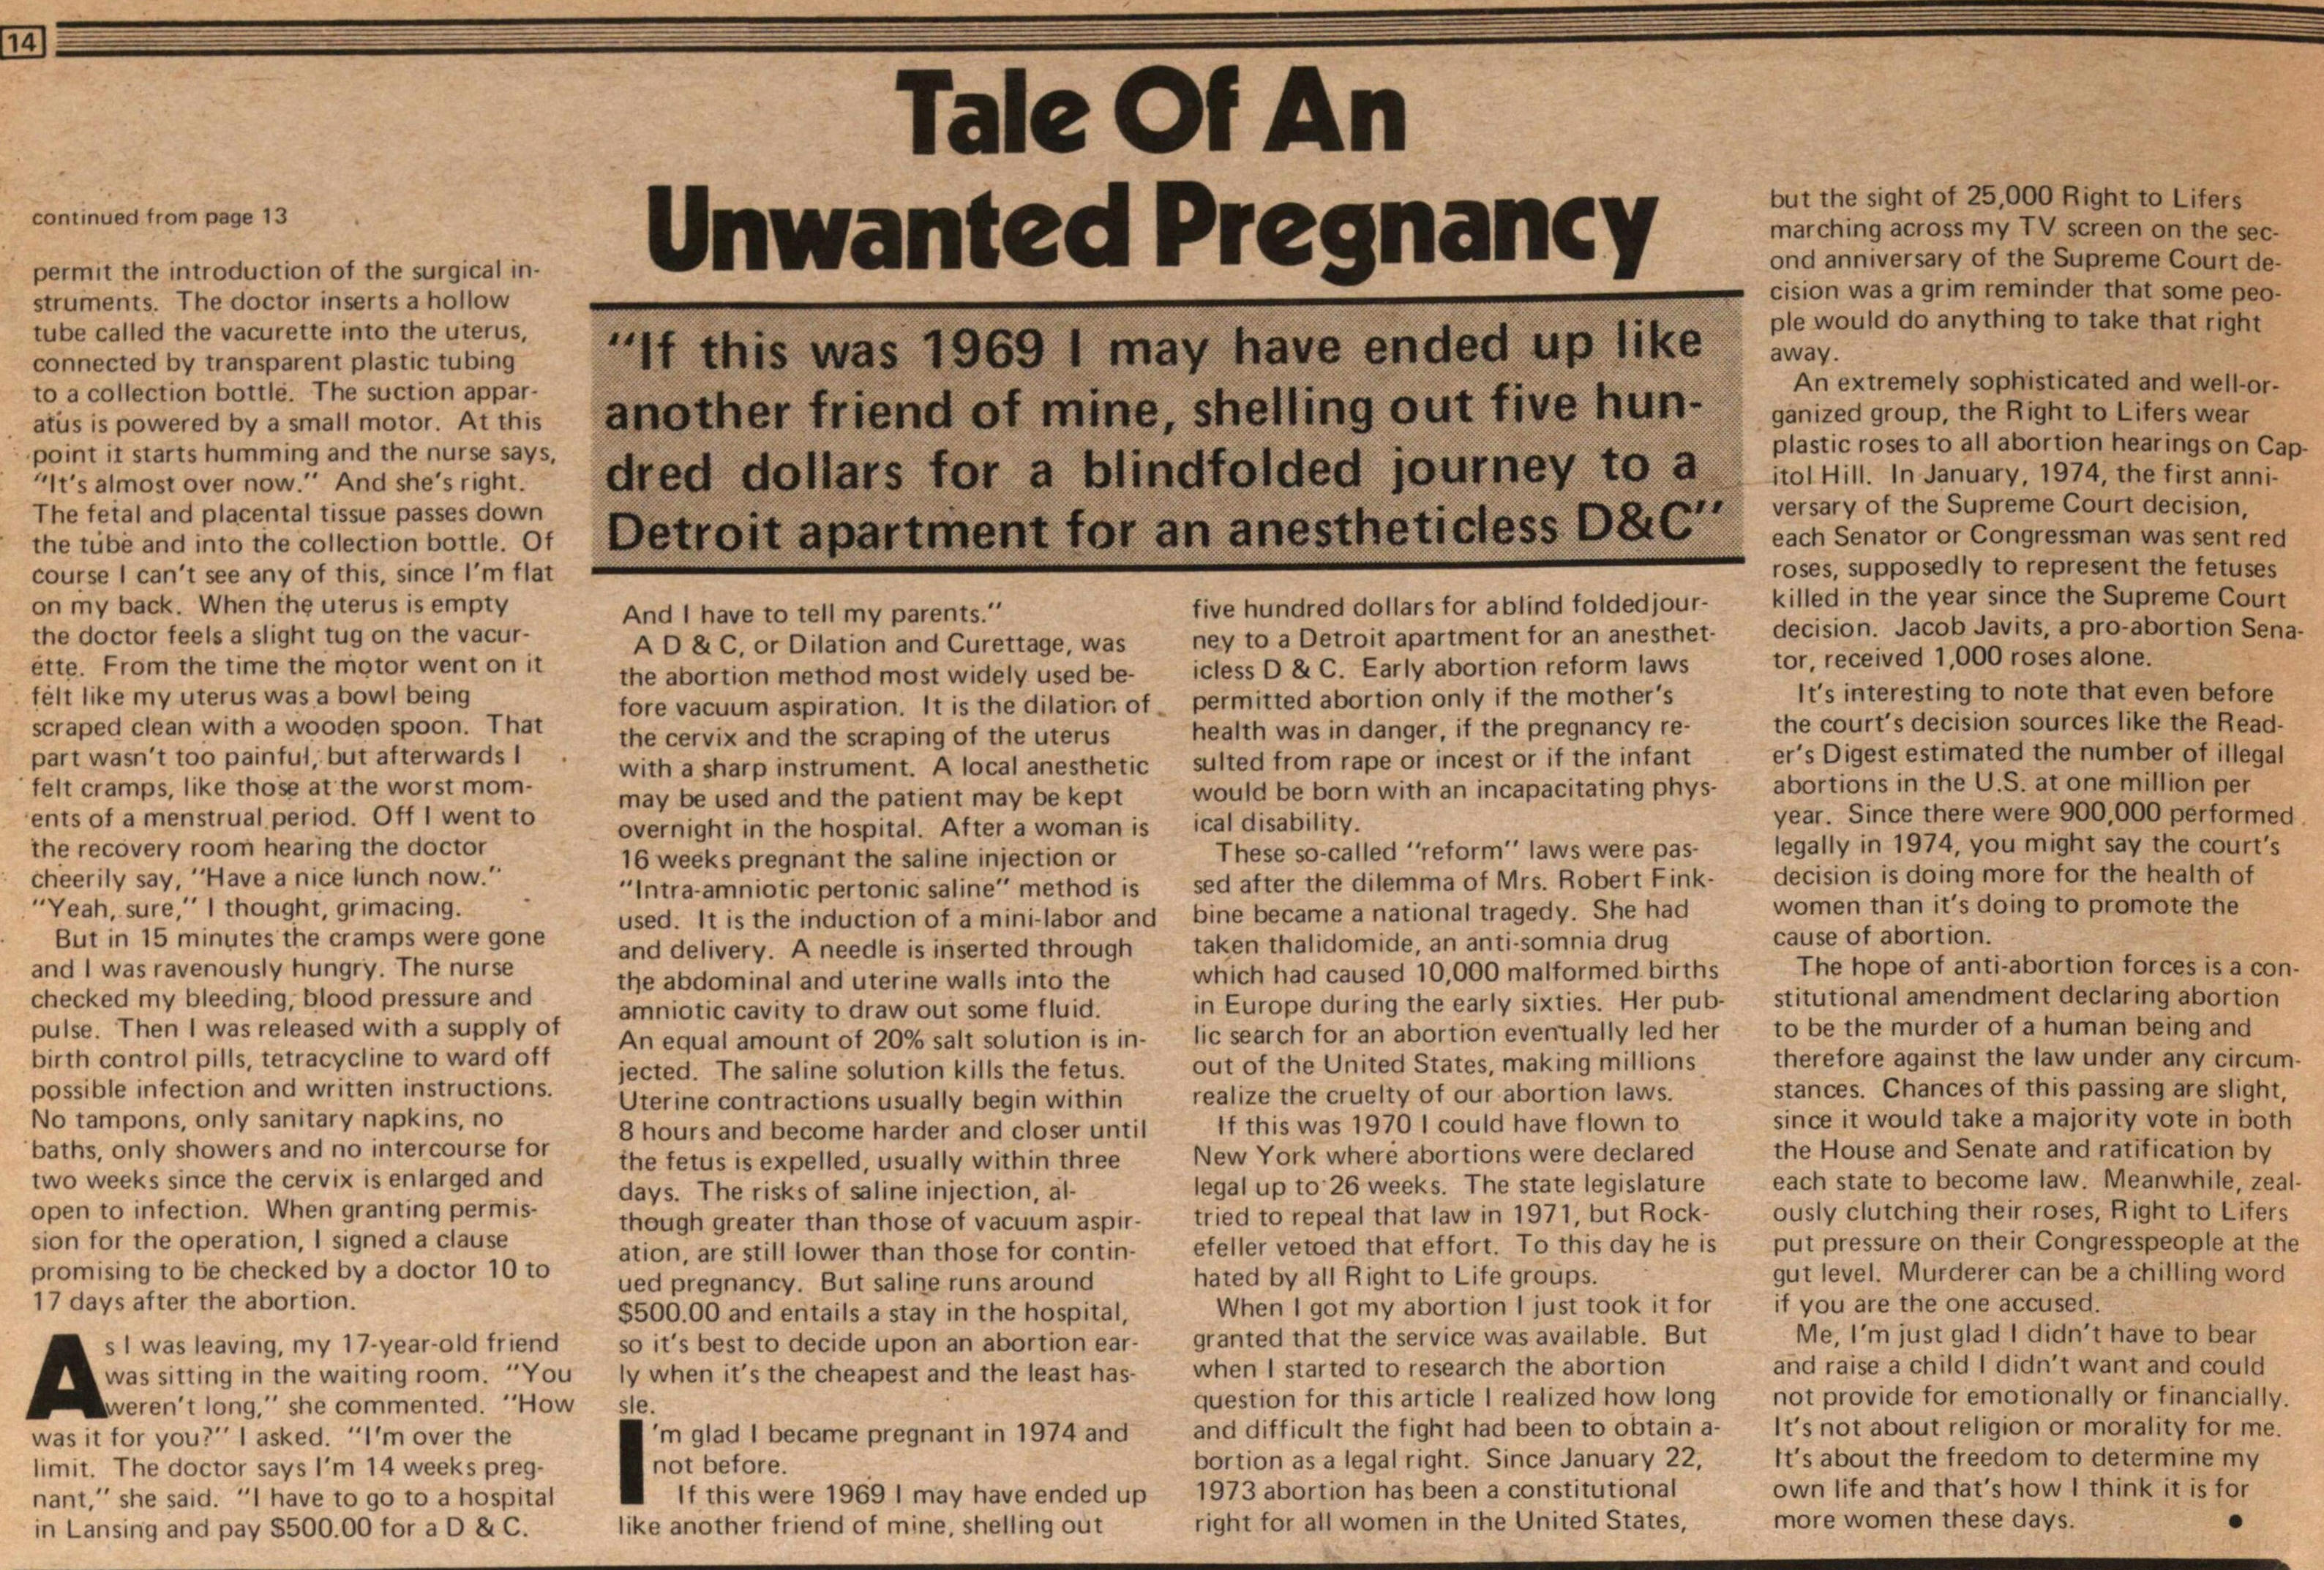 Tale Of An Unwanted Pregnancy image